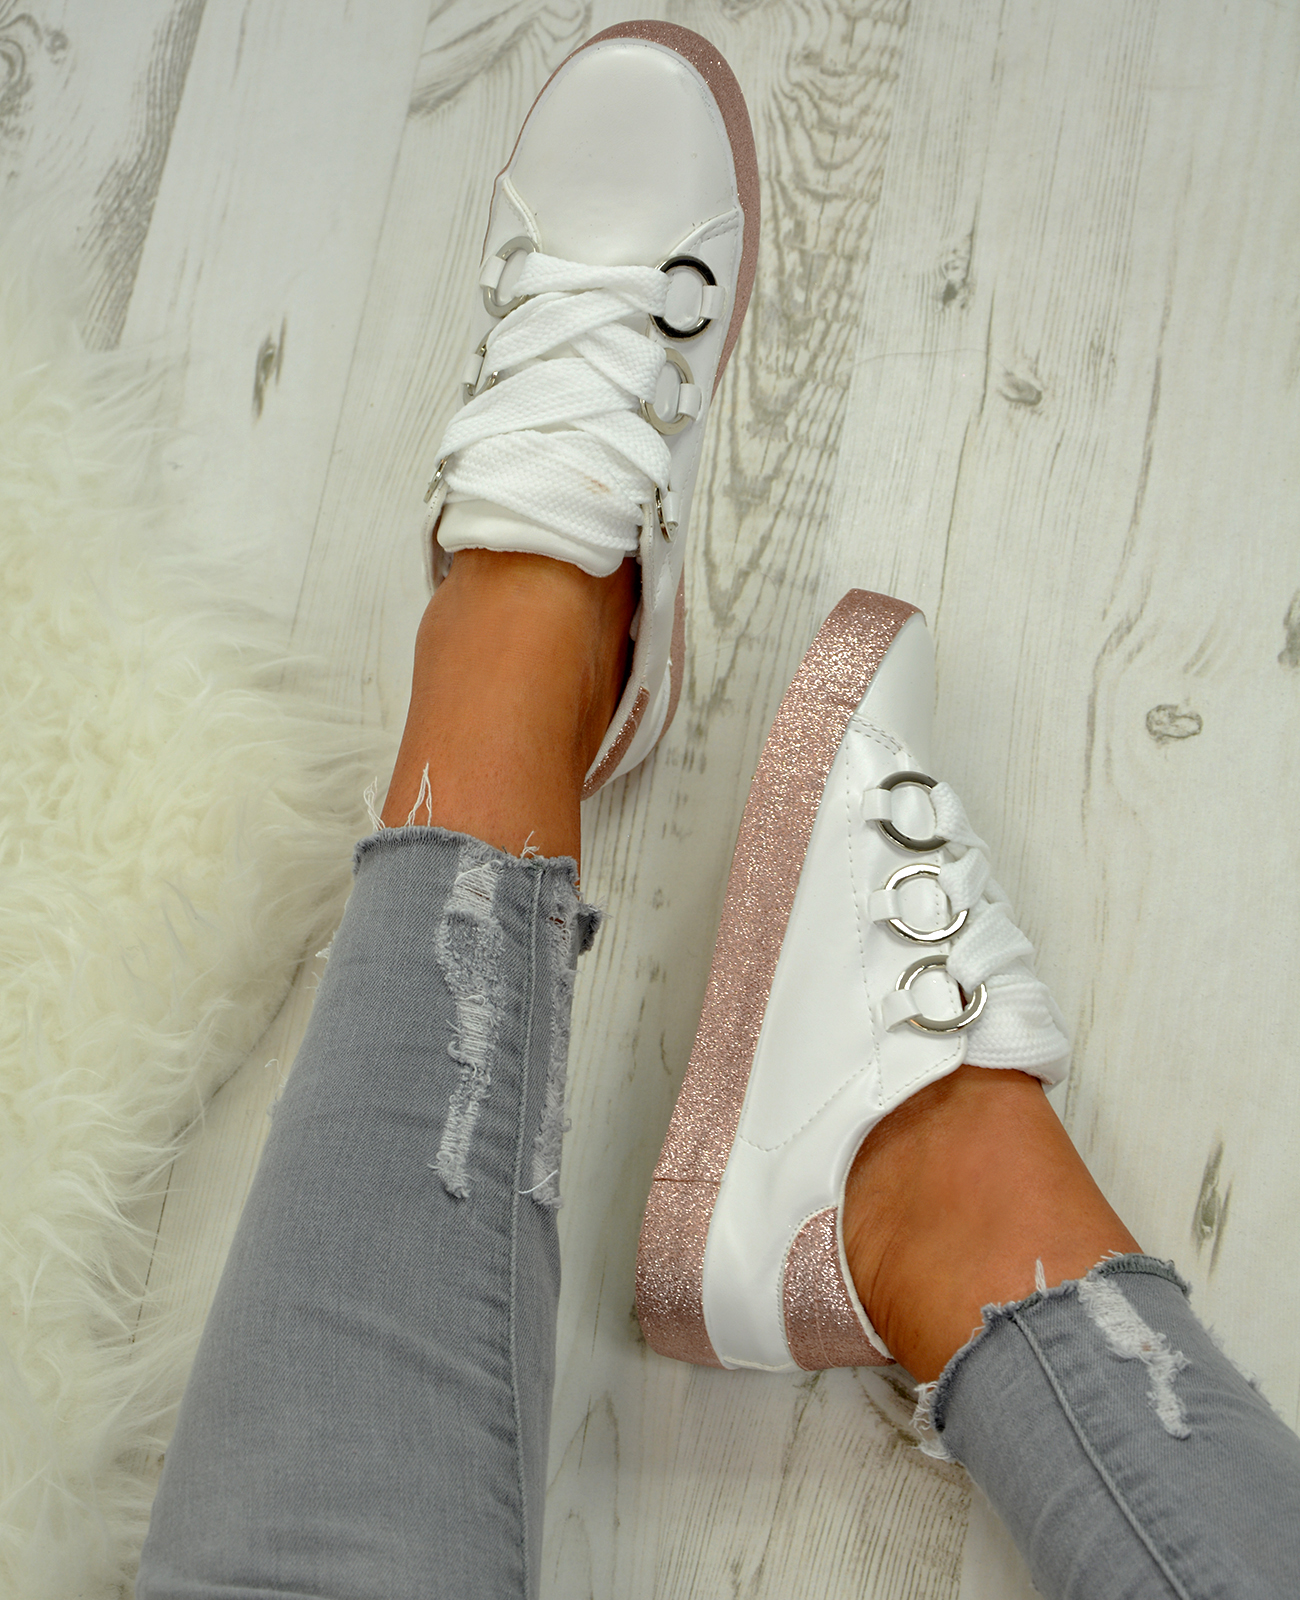 LADIES-WOMENS-GLITTER-SNEAKERS-SPARKLE-TRAINERS-LACE-UP-PLIMSOLL-PUMPS-SHOES thumbnail 24